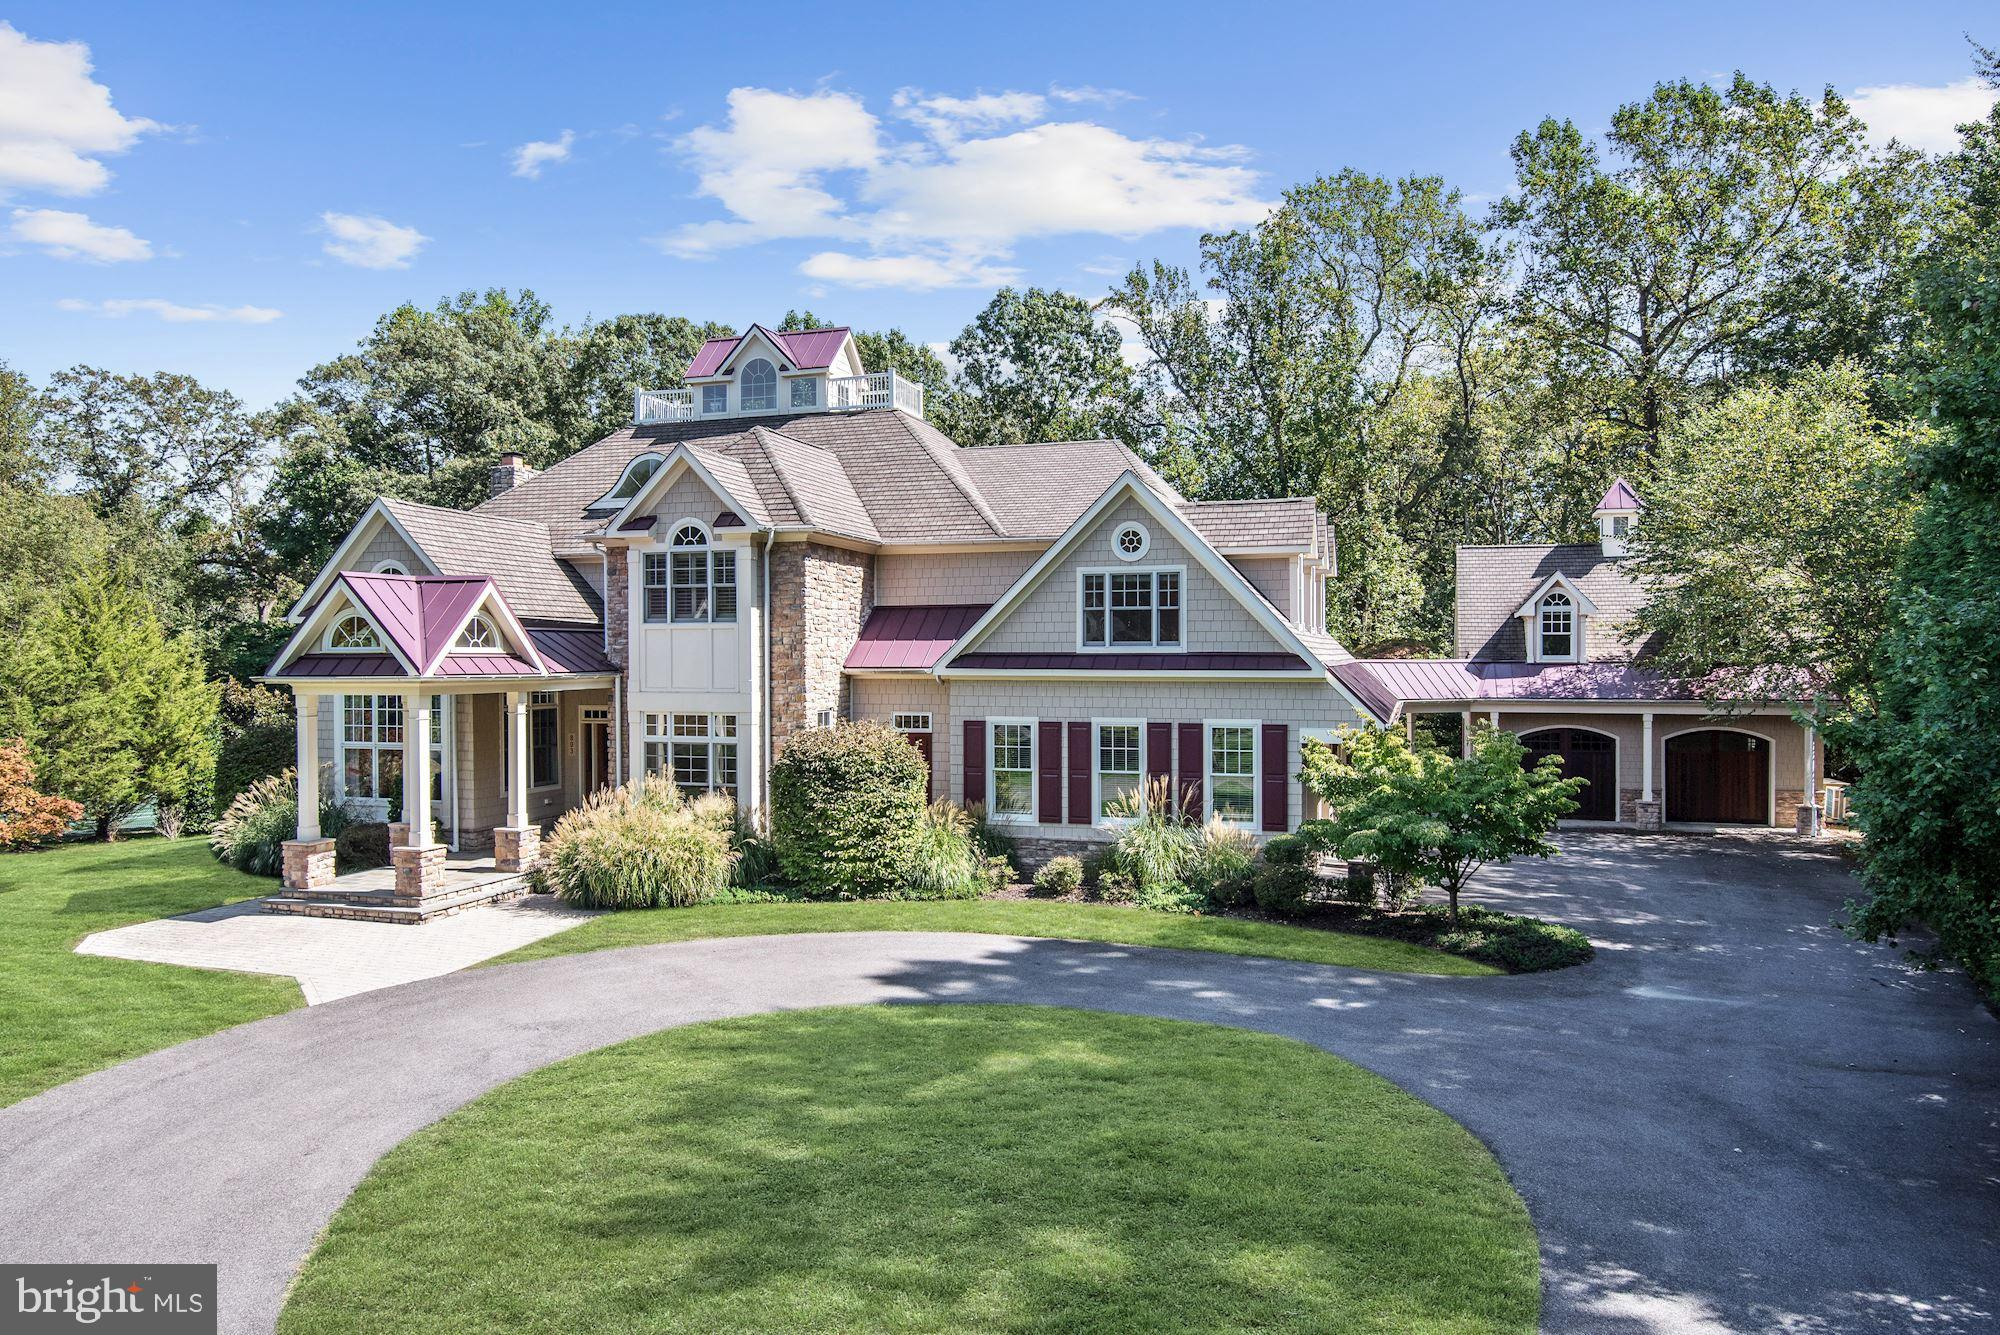 This IMMACULATE home sited on a 3-acre lot in a beautiful gated community has lavish details and end